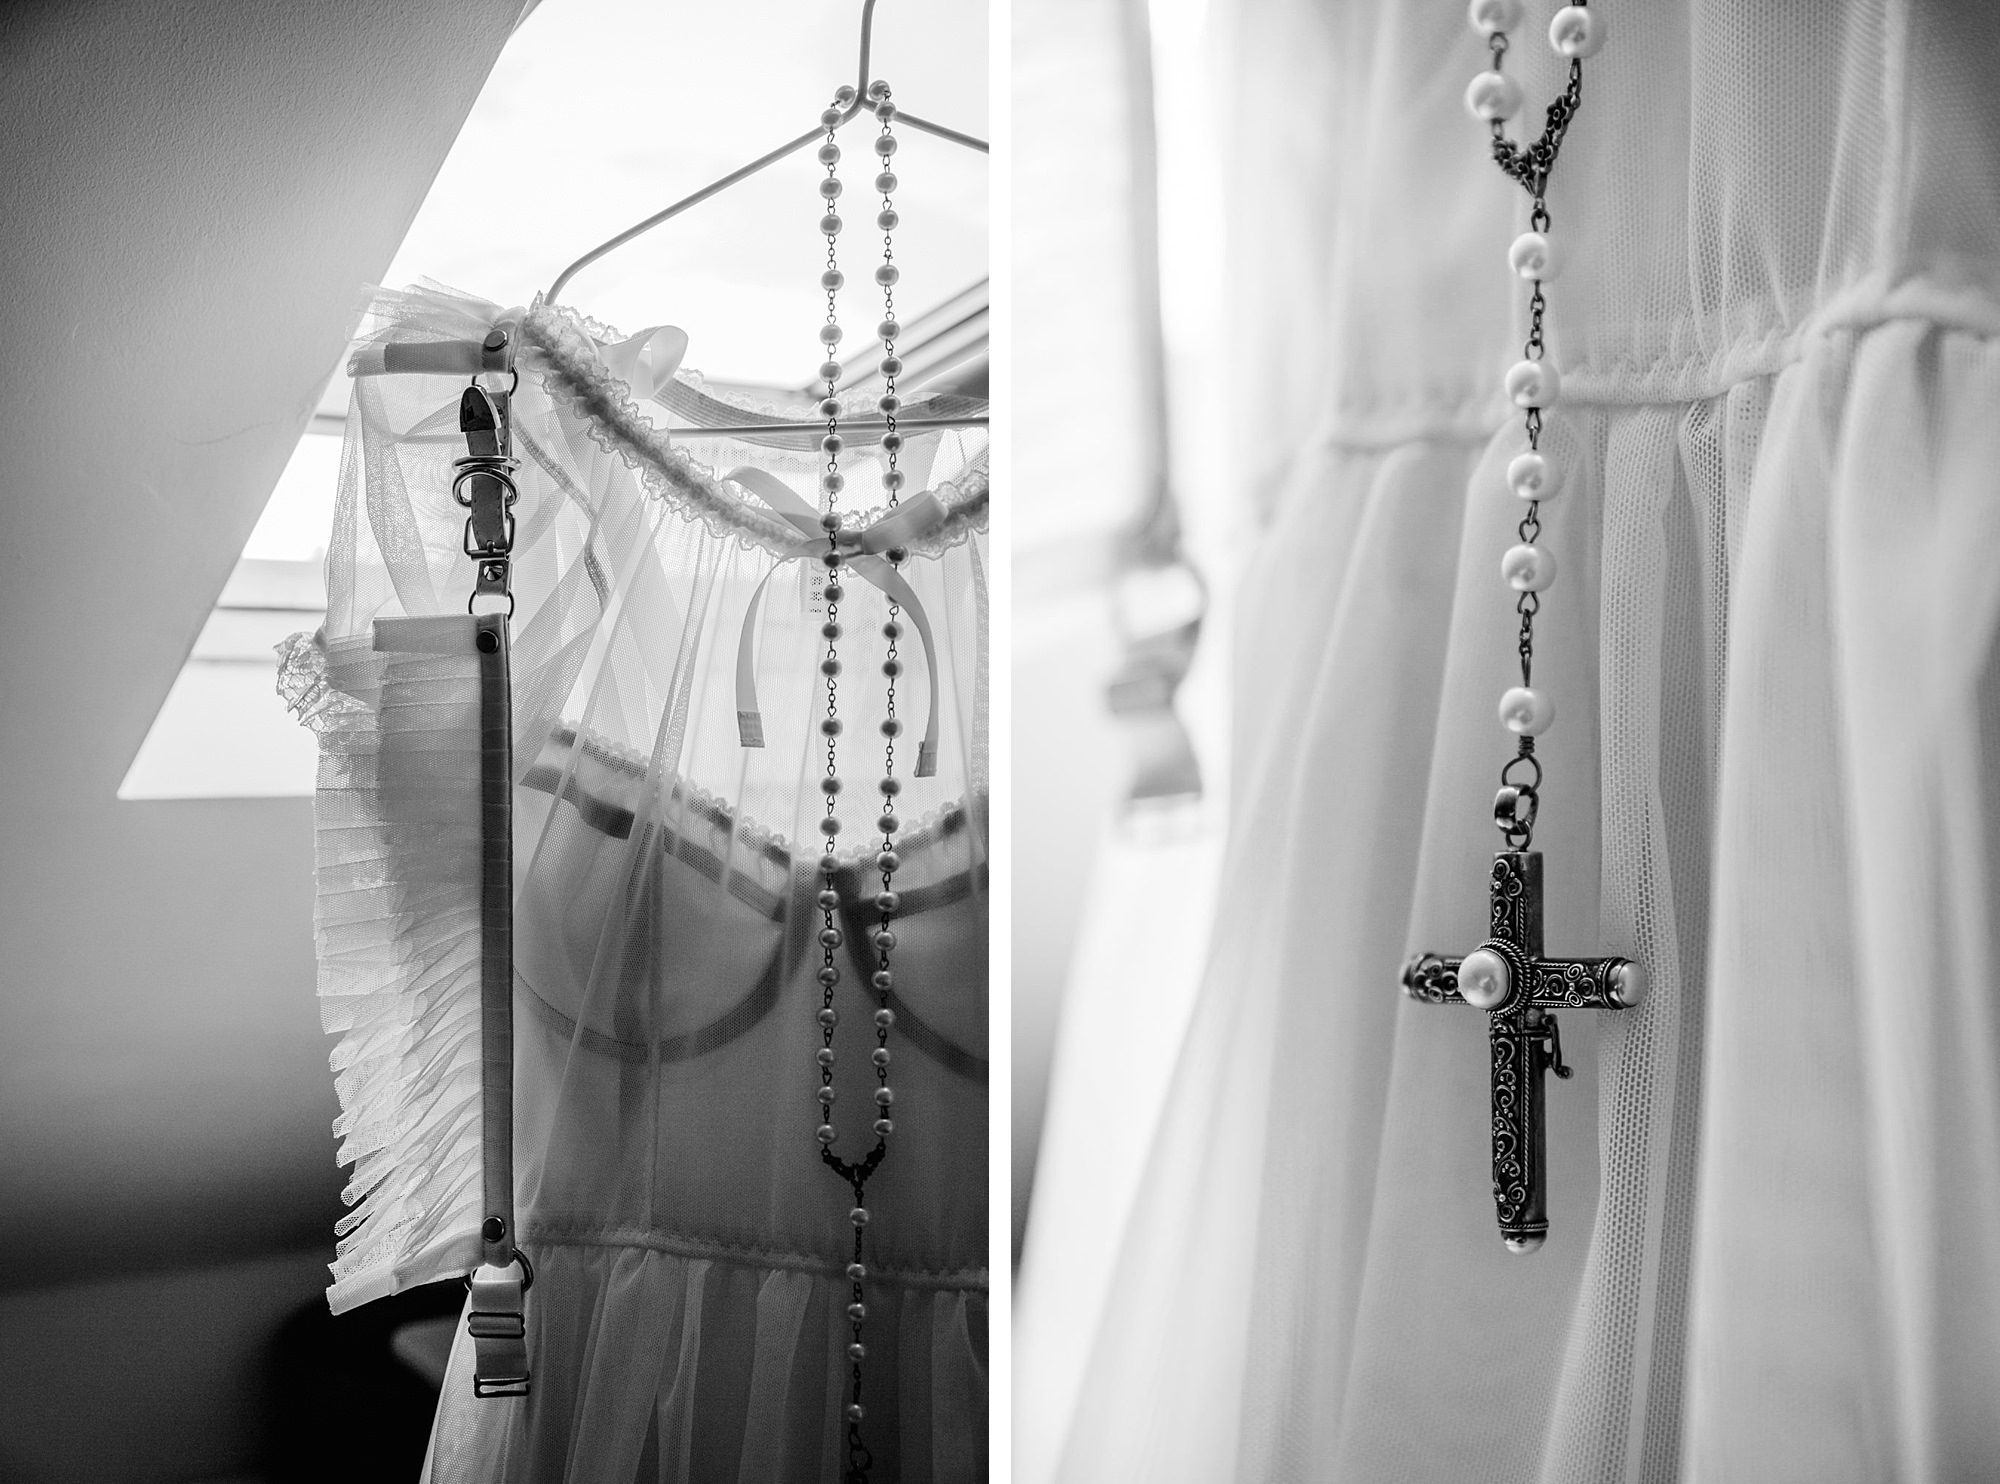 gothic lolita wedding dress details with rosary